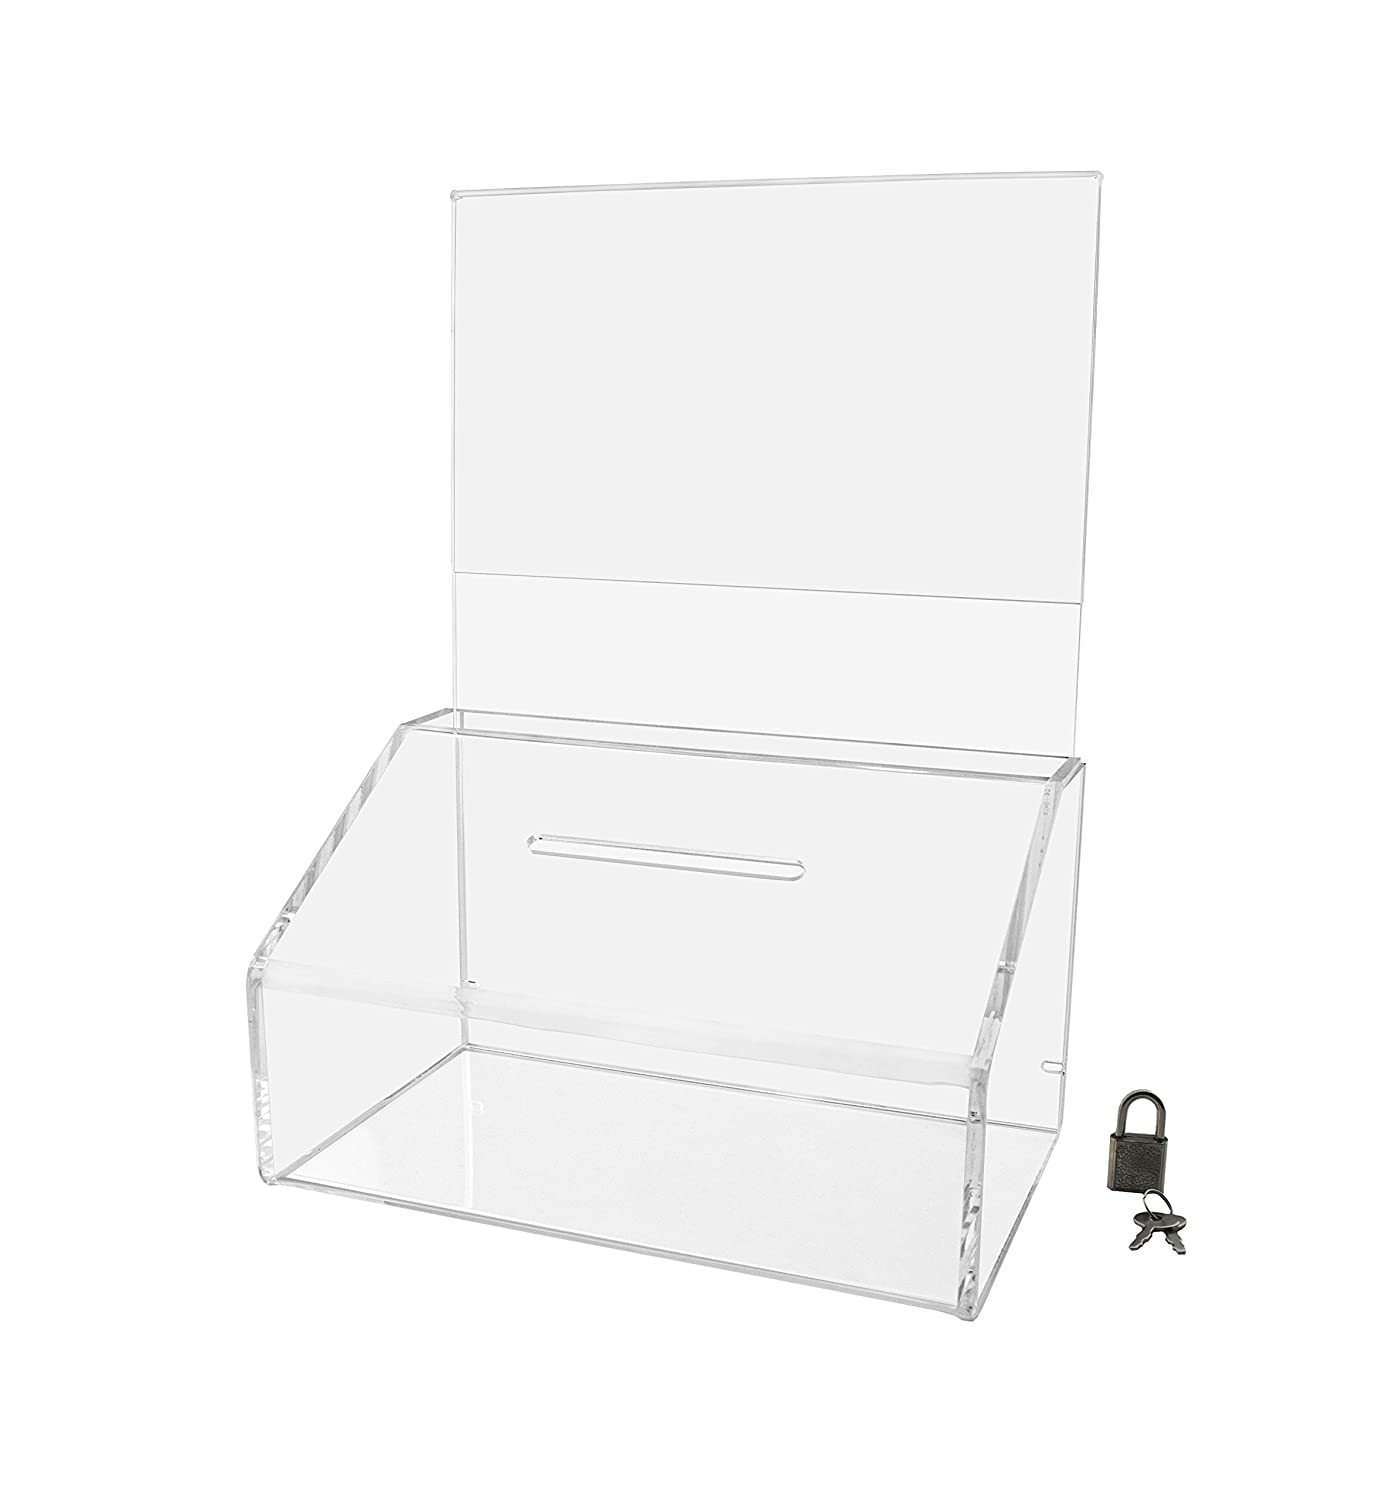 Marketing Holders Ballot Box Comment Suggestion Collection Contest Acrylic Cube 5.5w x 8.5h Black